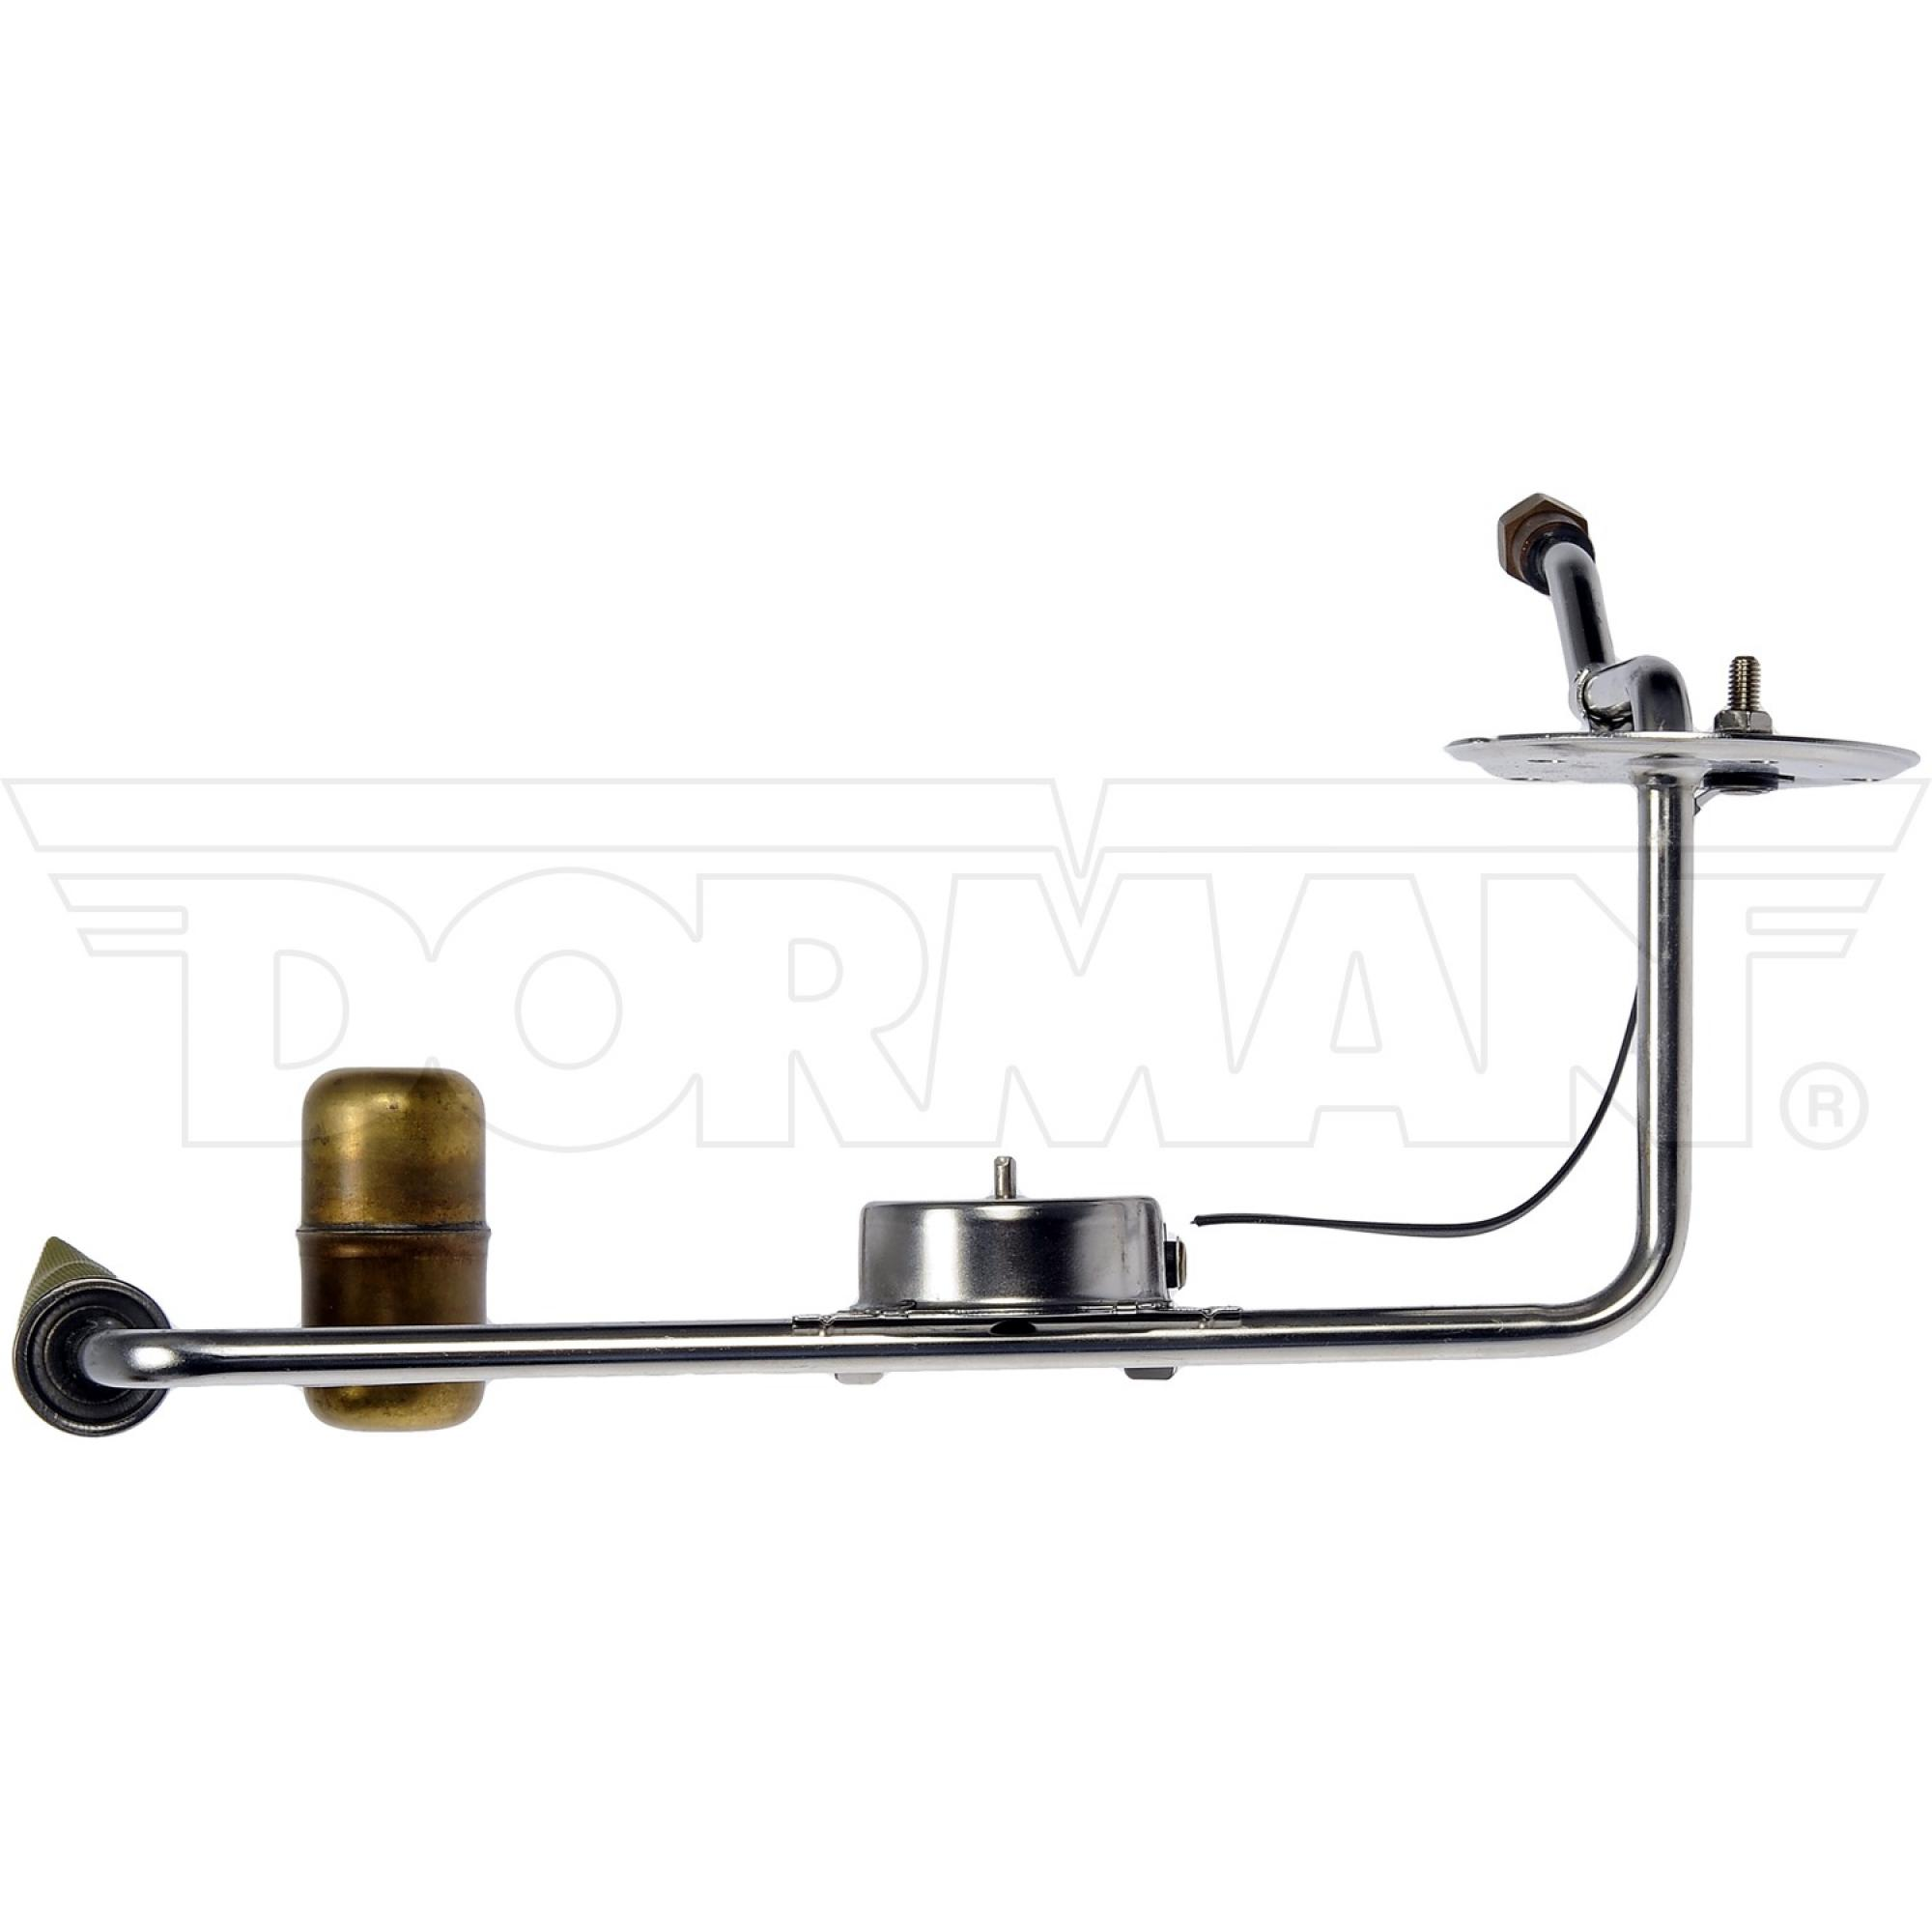 Dorman Fuel Tank Sending Unit